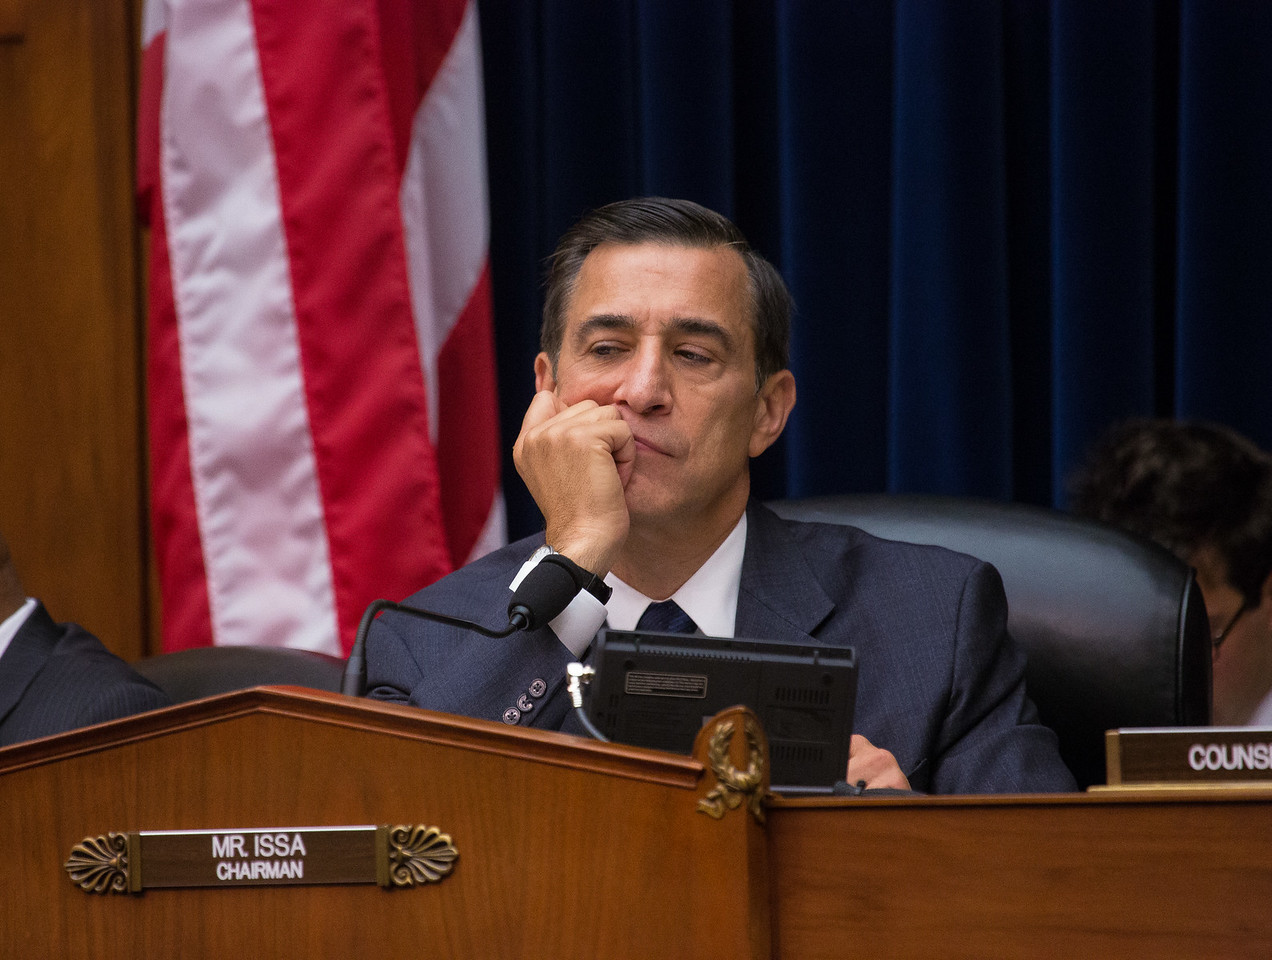 House Oversight Committee Chairman Darrell Issa (R-Calif.) is determined to get to the bottom of missing IRS emails at hearings on June 24 on Capitol Hill.